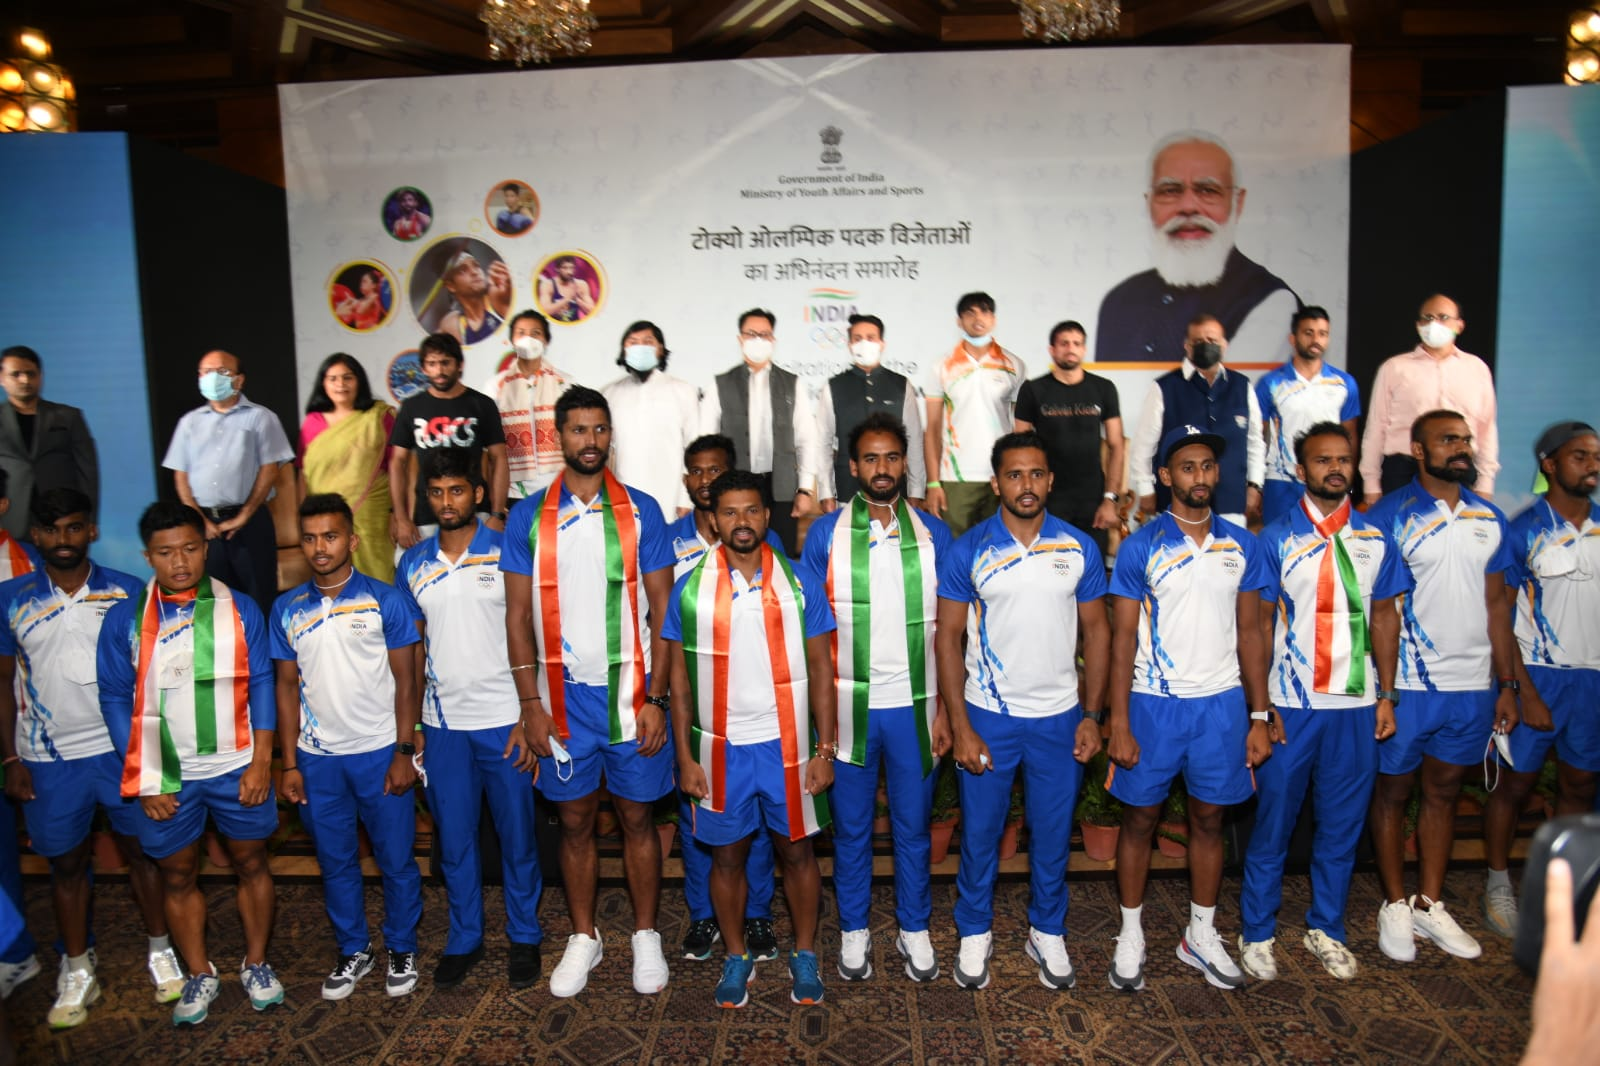 The government felicitates medal winners in a grand ceremony upon return from the Olympics, from Neeraj Chopra to Indian hockey